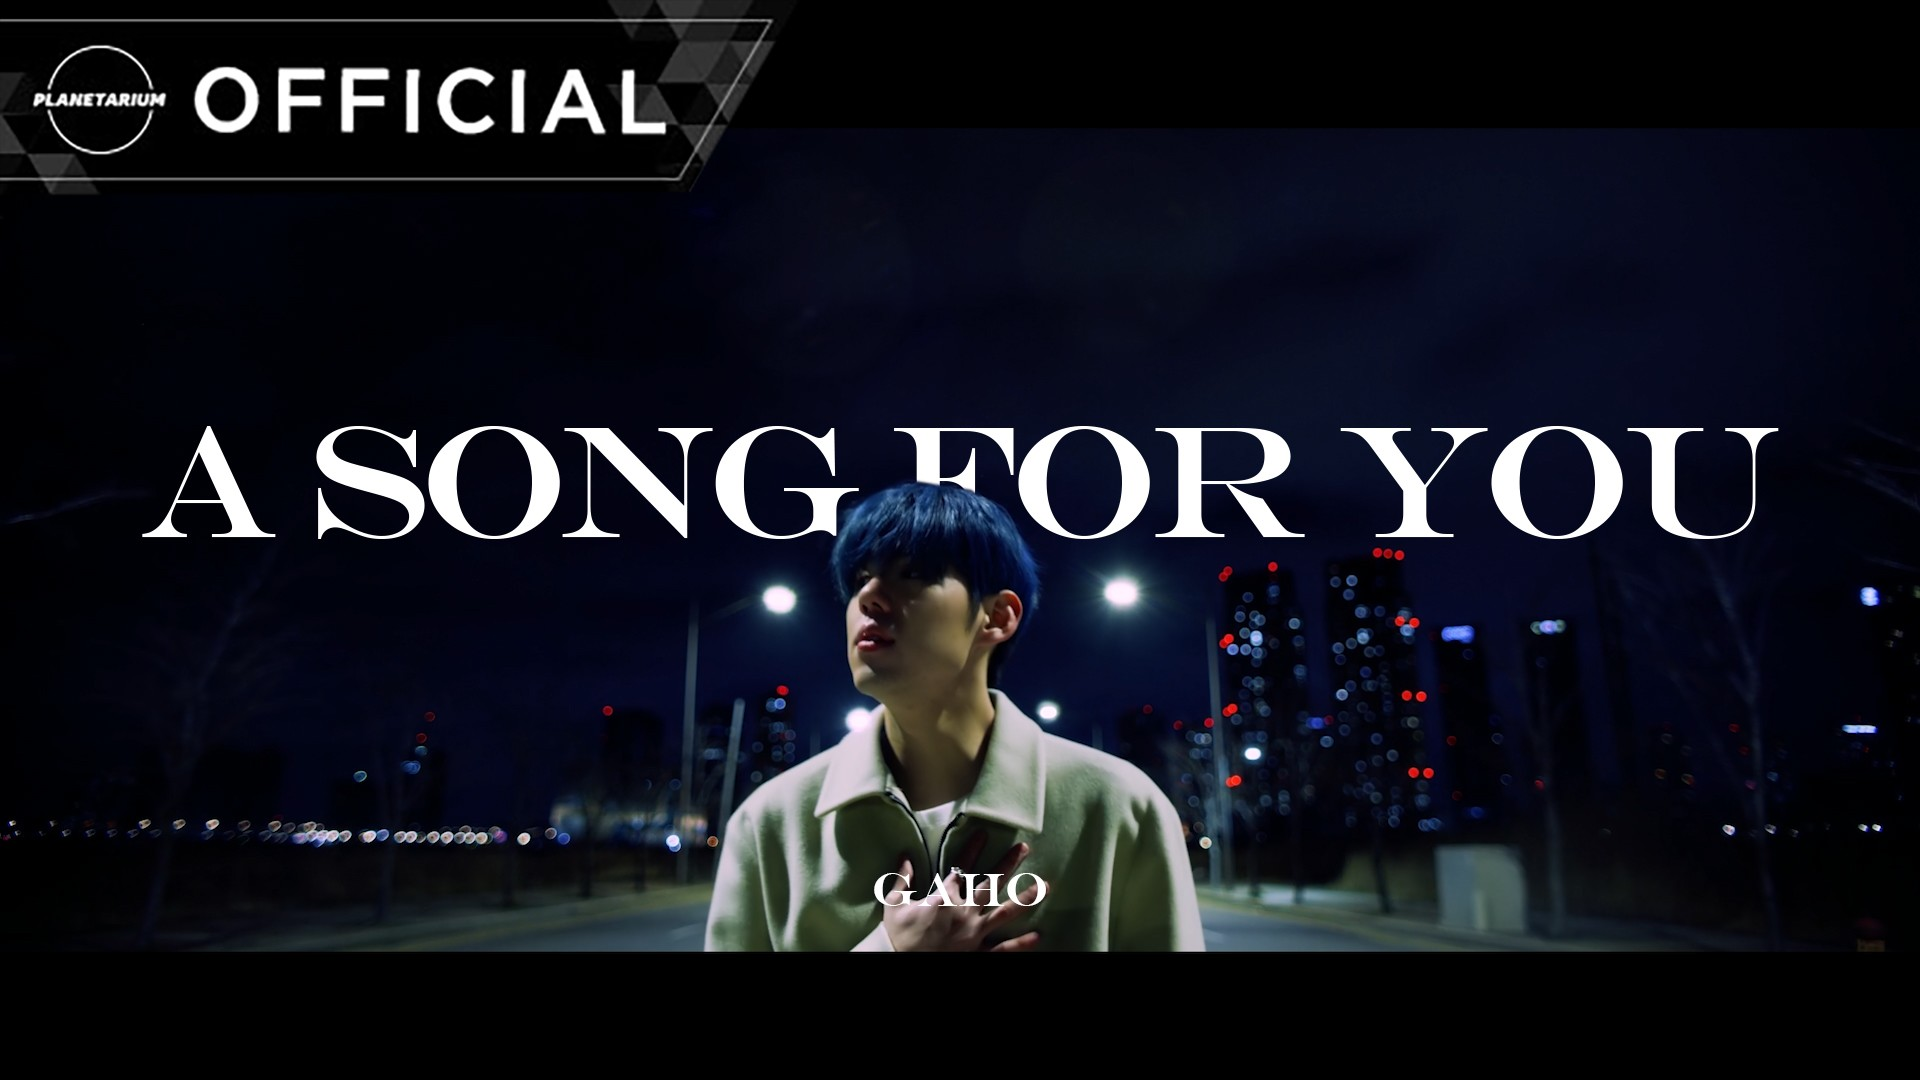 [MV] 가호(Gaho) - A song for you (ENG SUB)